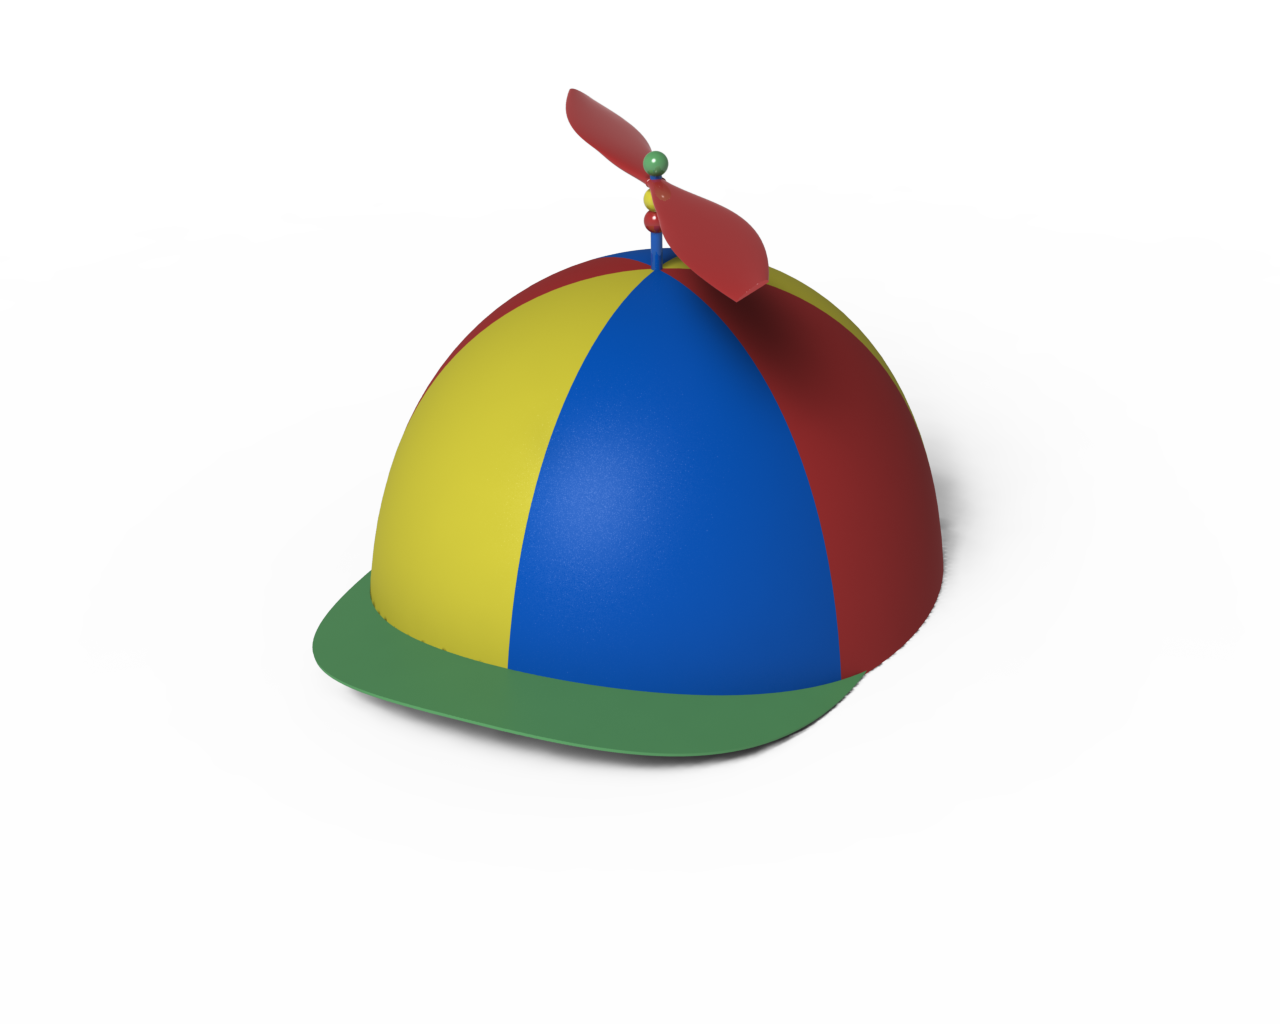 Helicopter hat png. Propeller hats